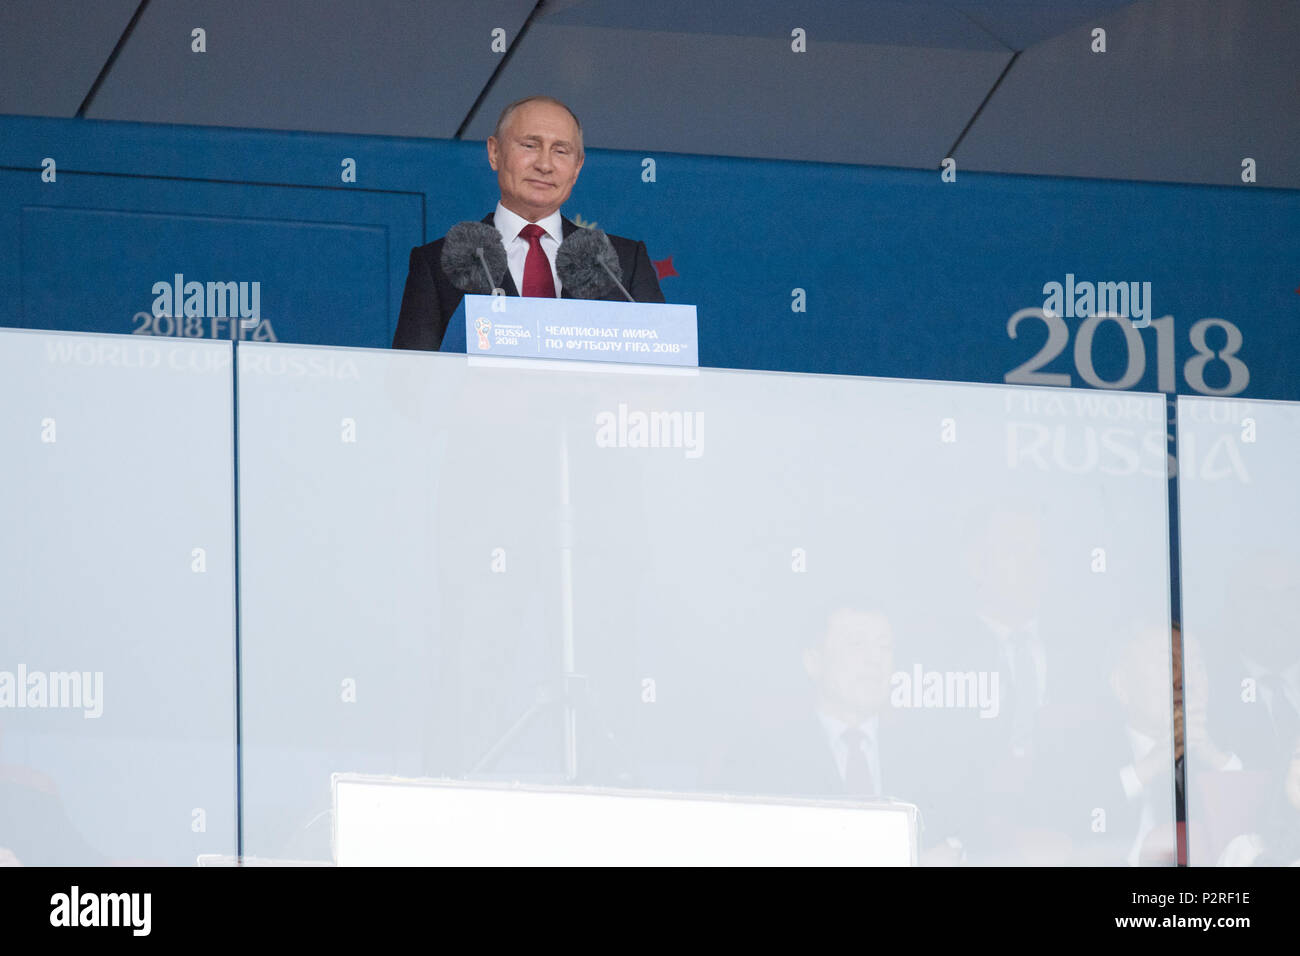 Vladimir Vladimirovich PUTIN, President of the Russian Federation, gives the opening speech, talks, talking, half figure, half figure, opening speech, opening, celebration, Russia (RUS) - Saudi Arabia (KSA) 5: 0, preliminary round, group A, match 1 , on 14.06.2018 in Moscow; Football World Cup 2018 in Russia from 14.06. - 15.07.2018. | usage worldwide - Stock Image